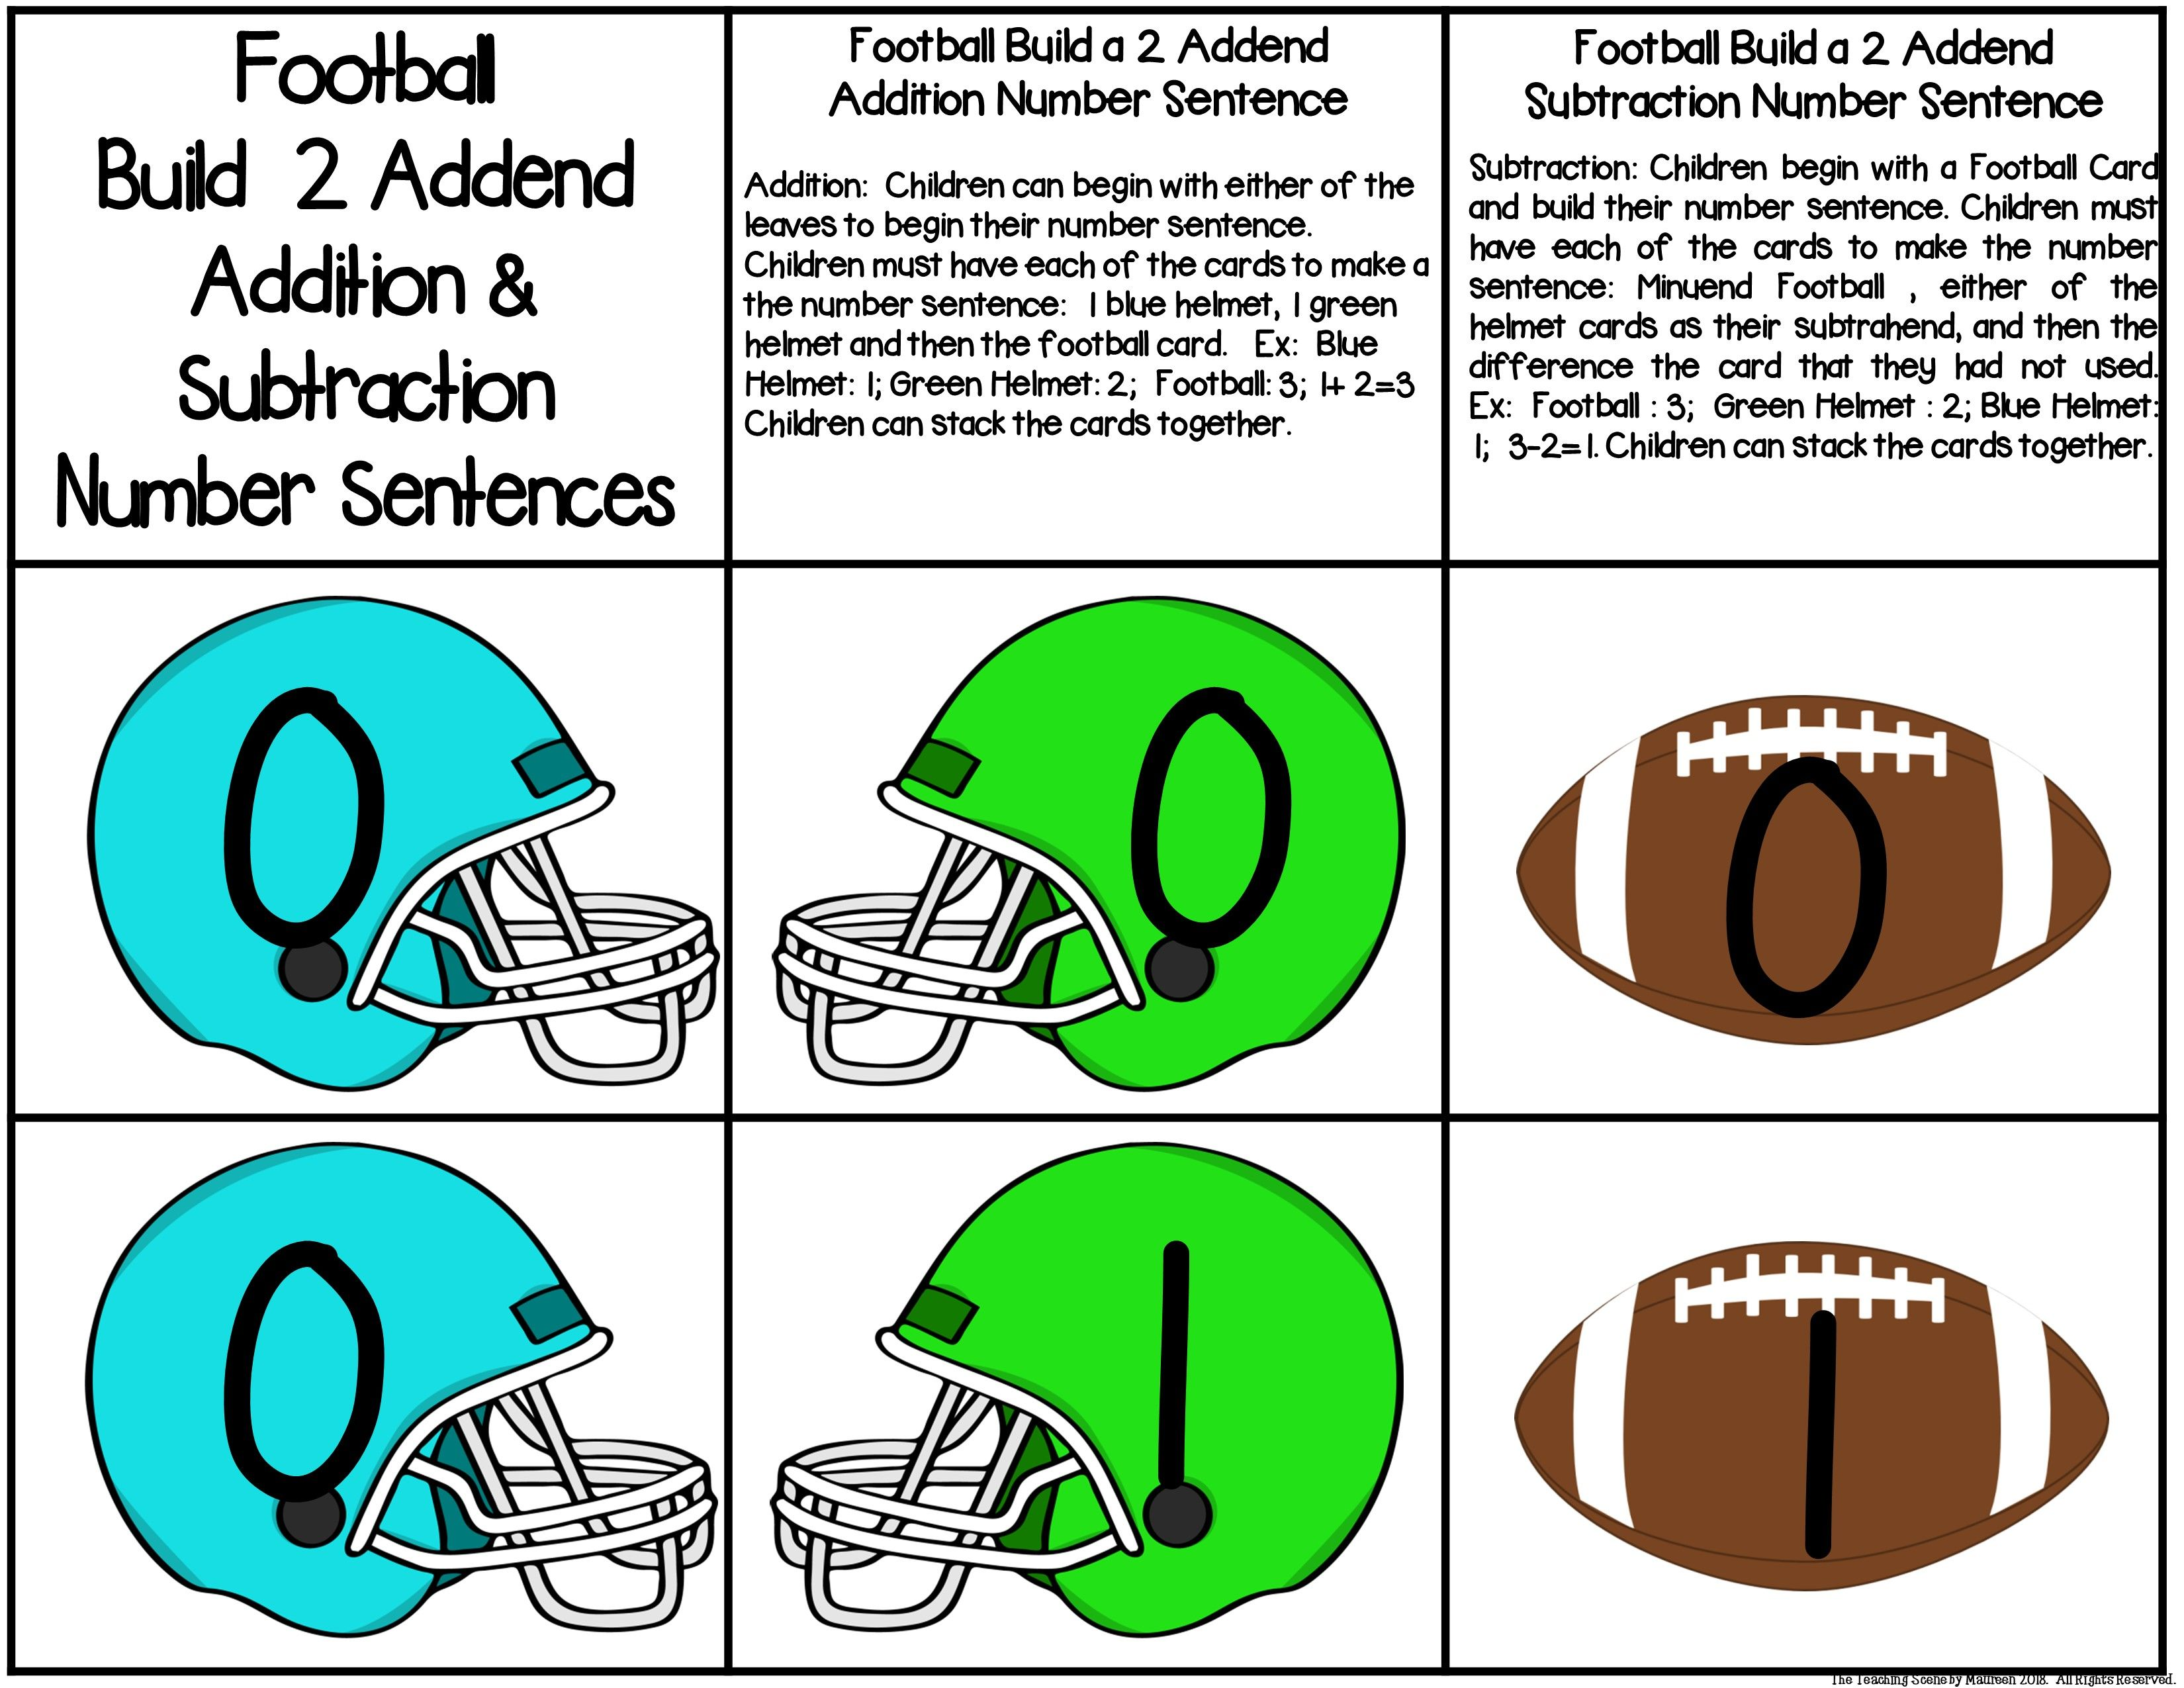 Football Build 2 Addend 0 20 Addition Amp Subtraction Number